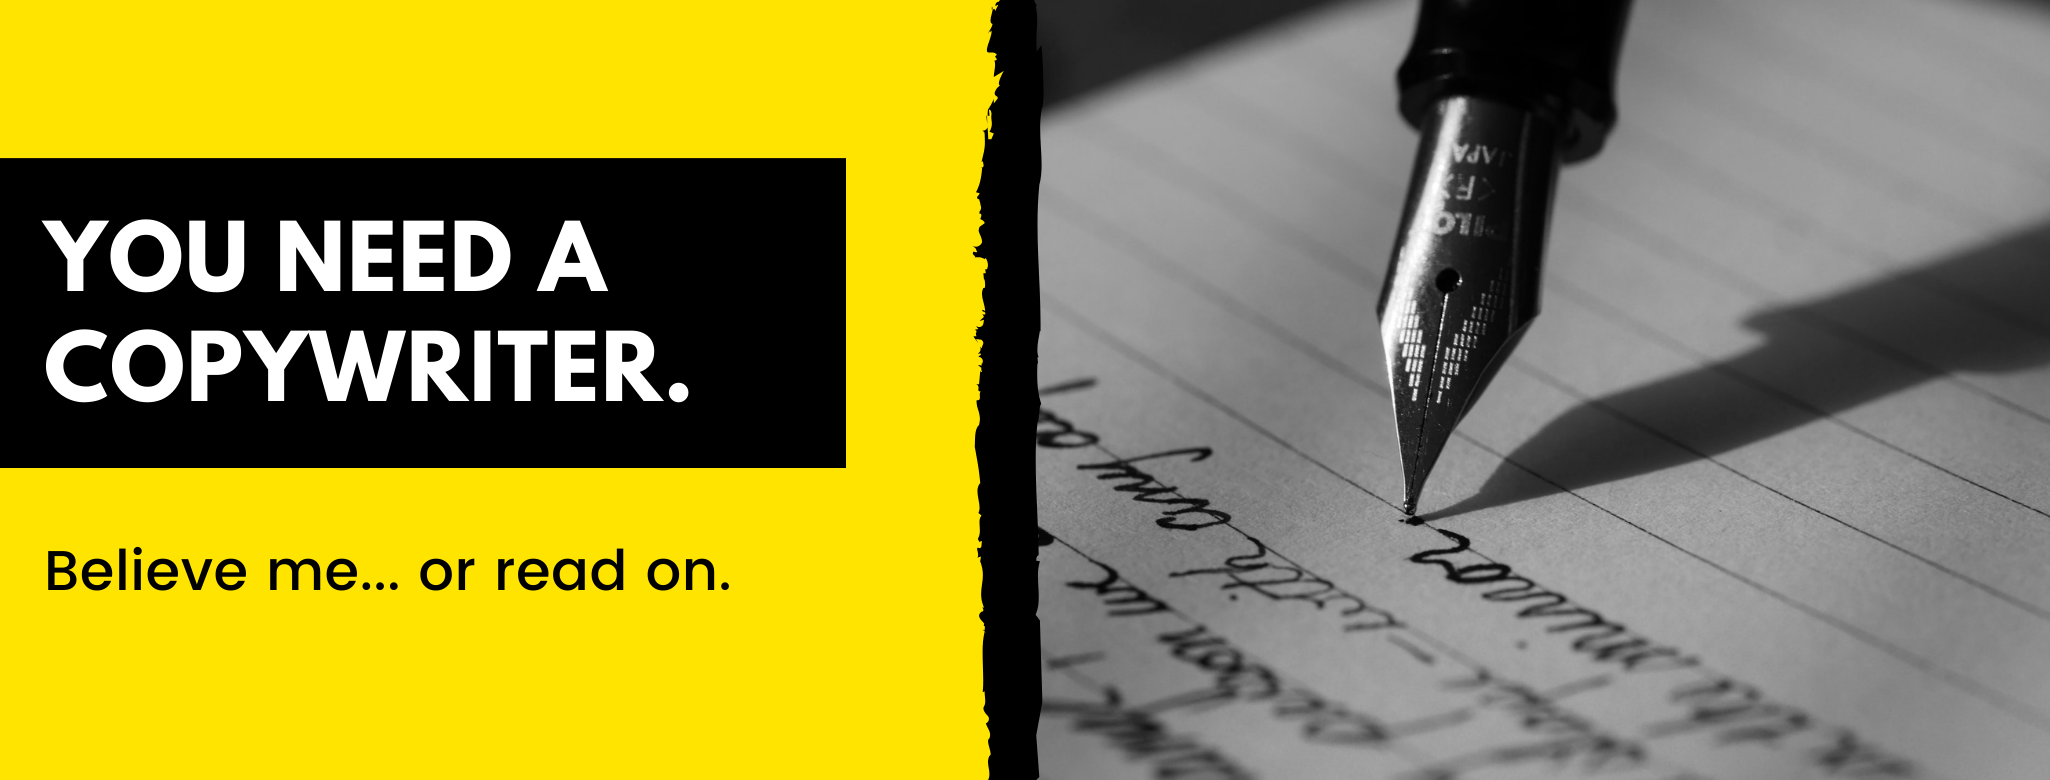 5 persuasive reasons why every small business should hire a copywriter—and where to find one.